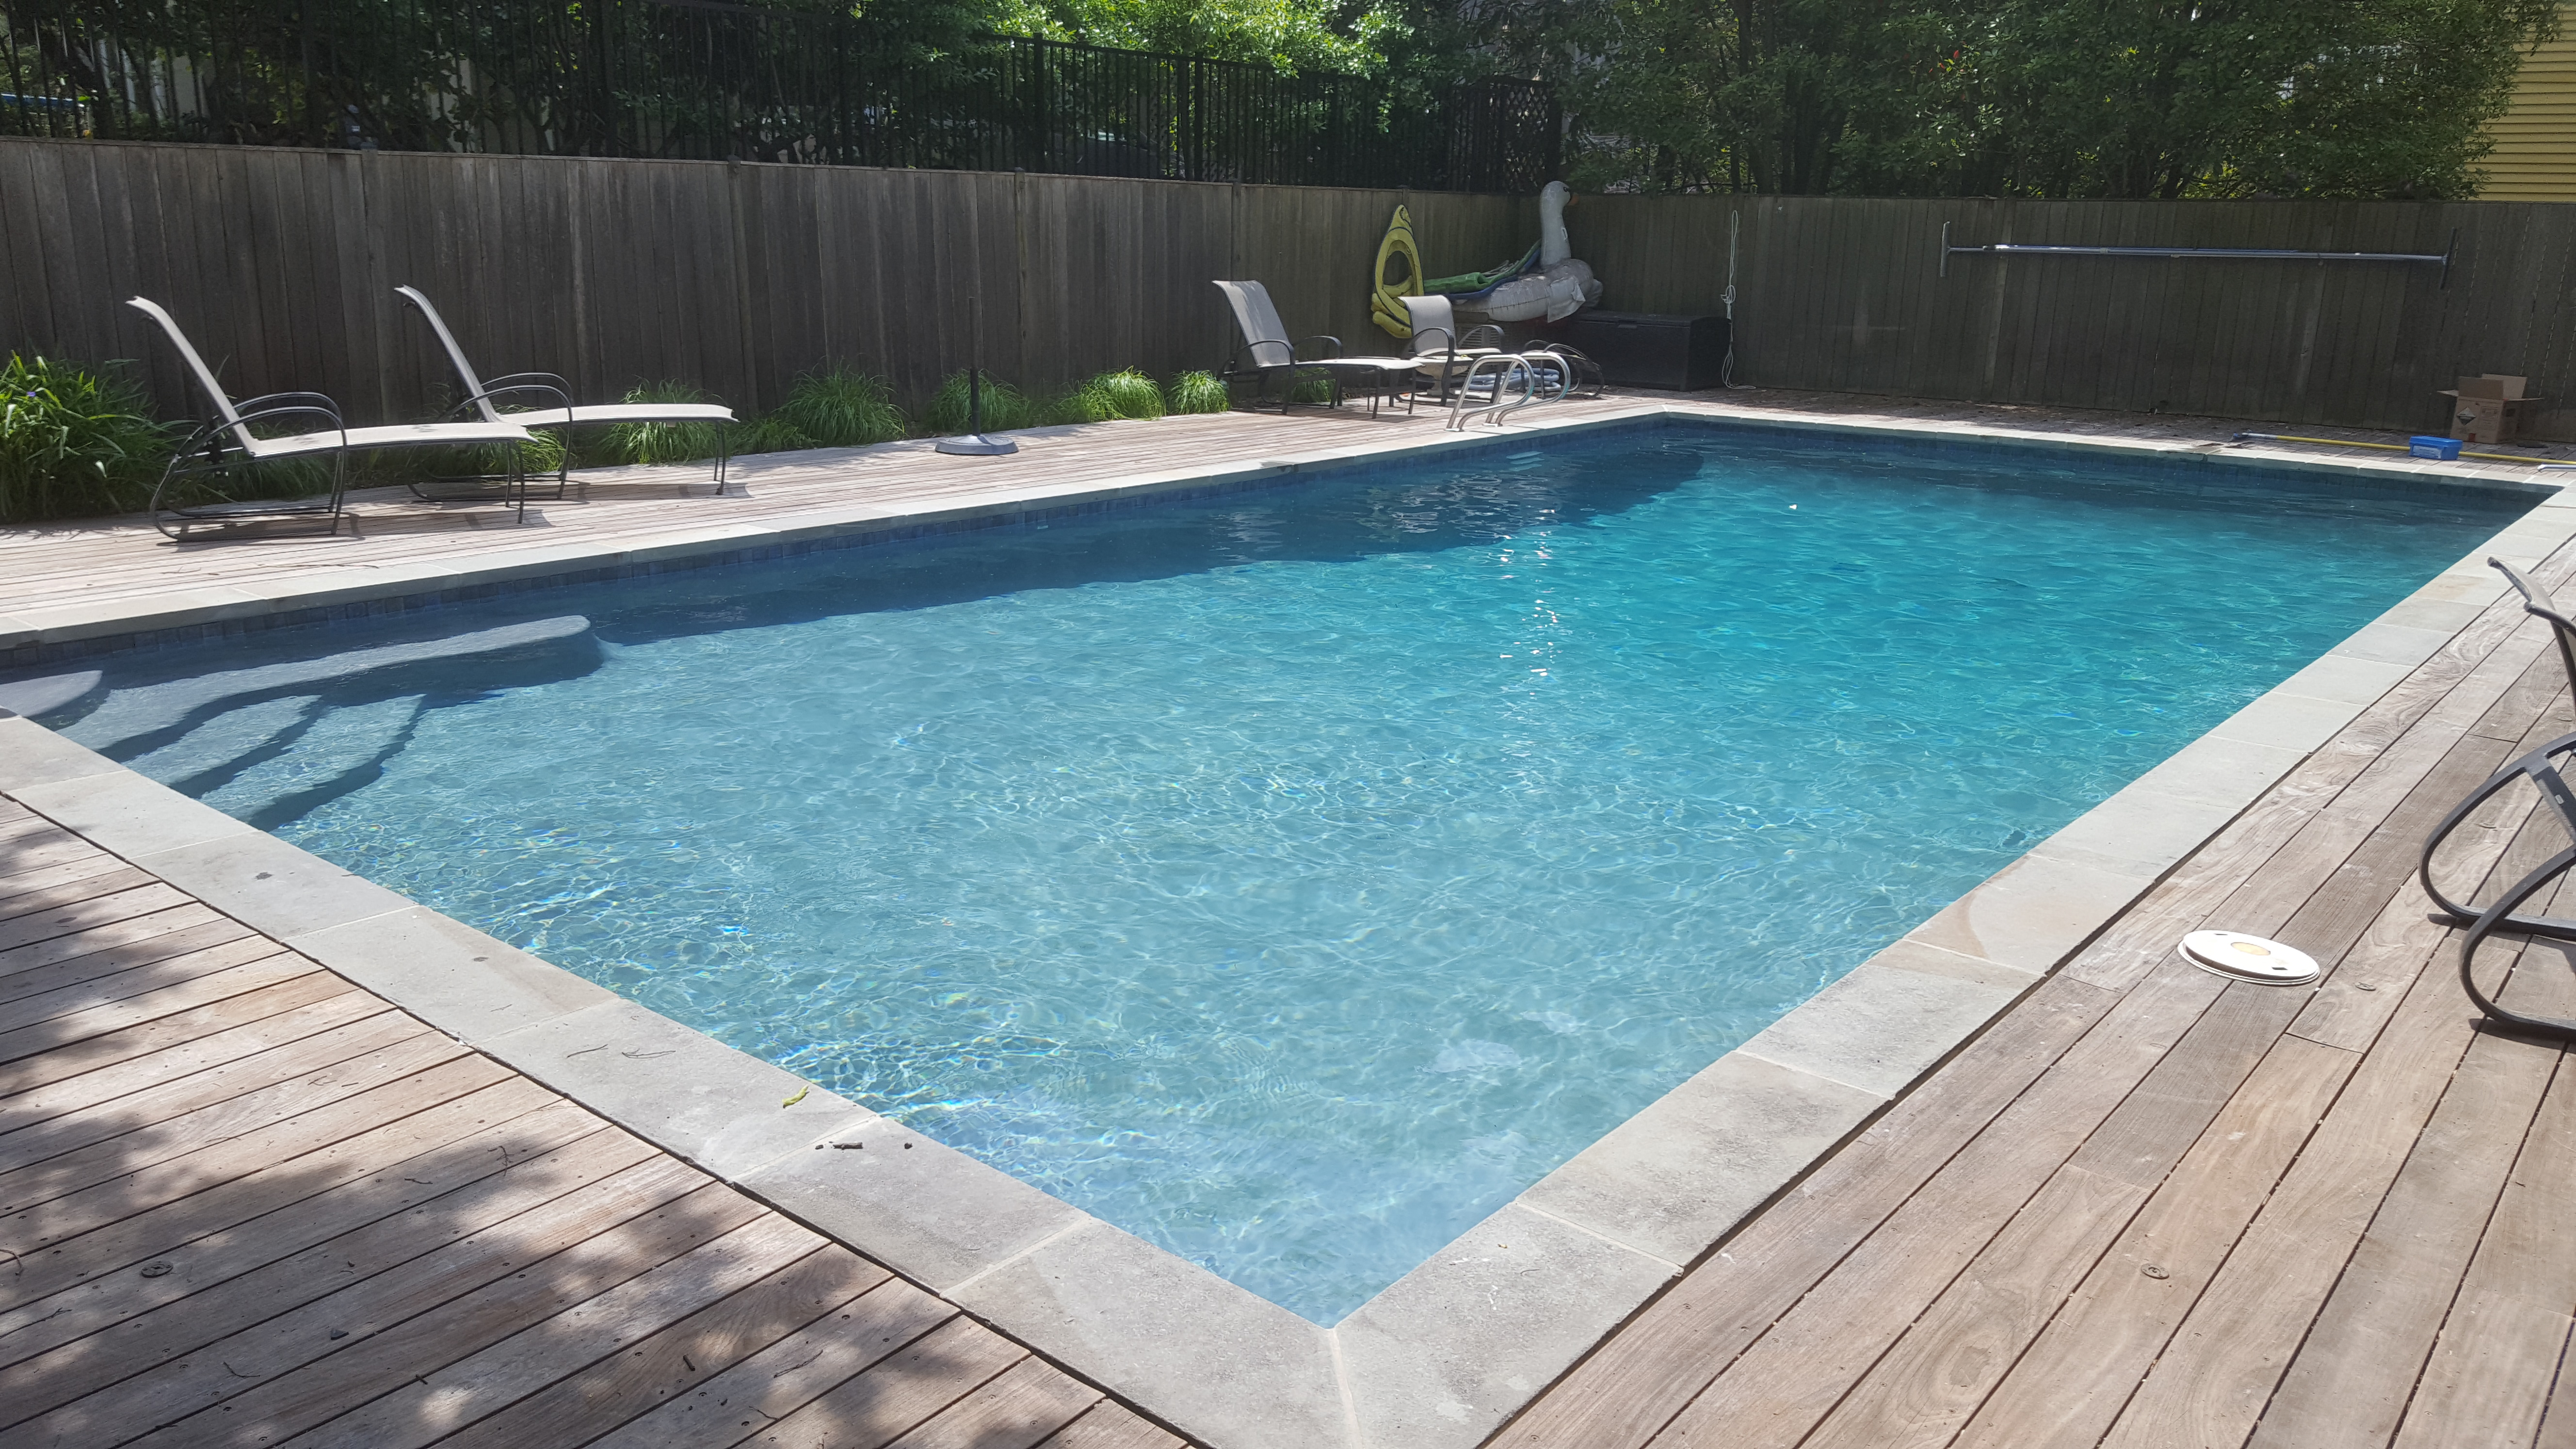 MS Home Pool Services Renovation